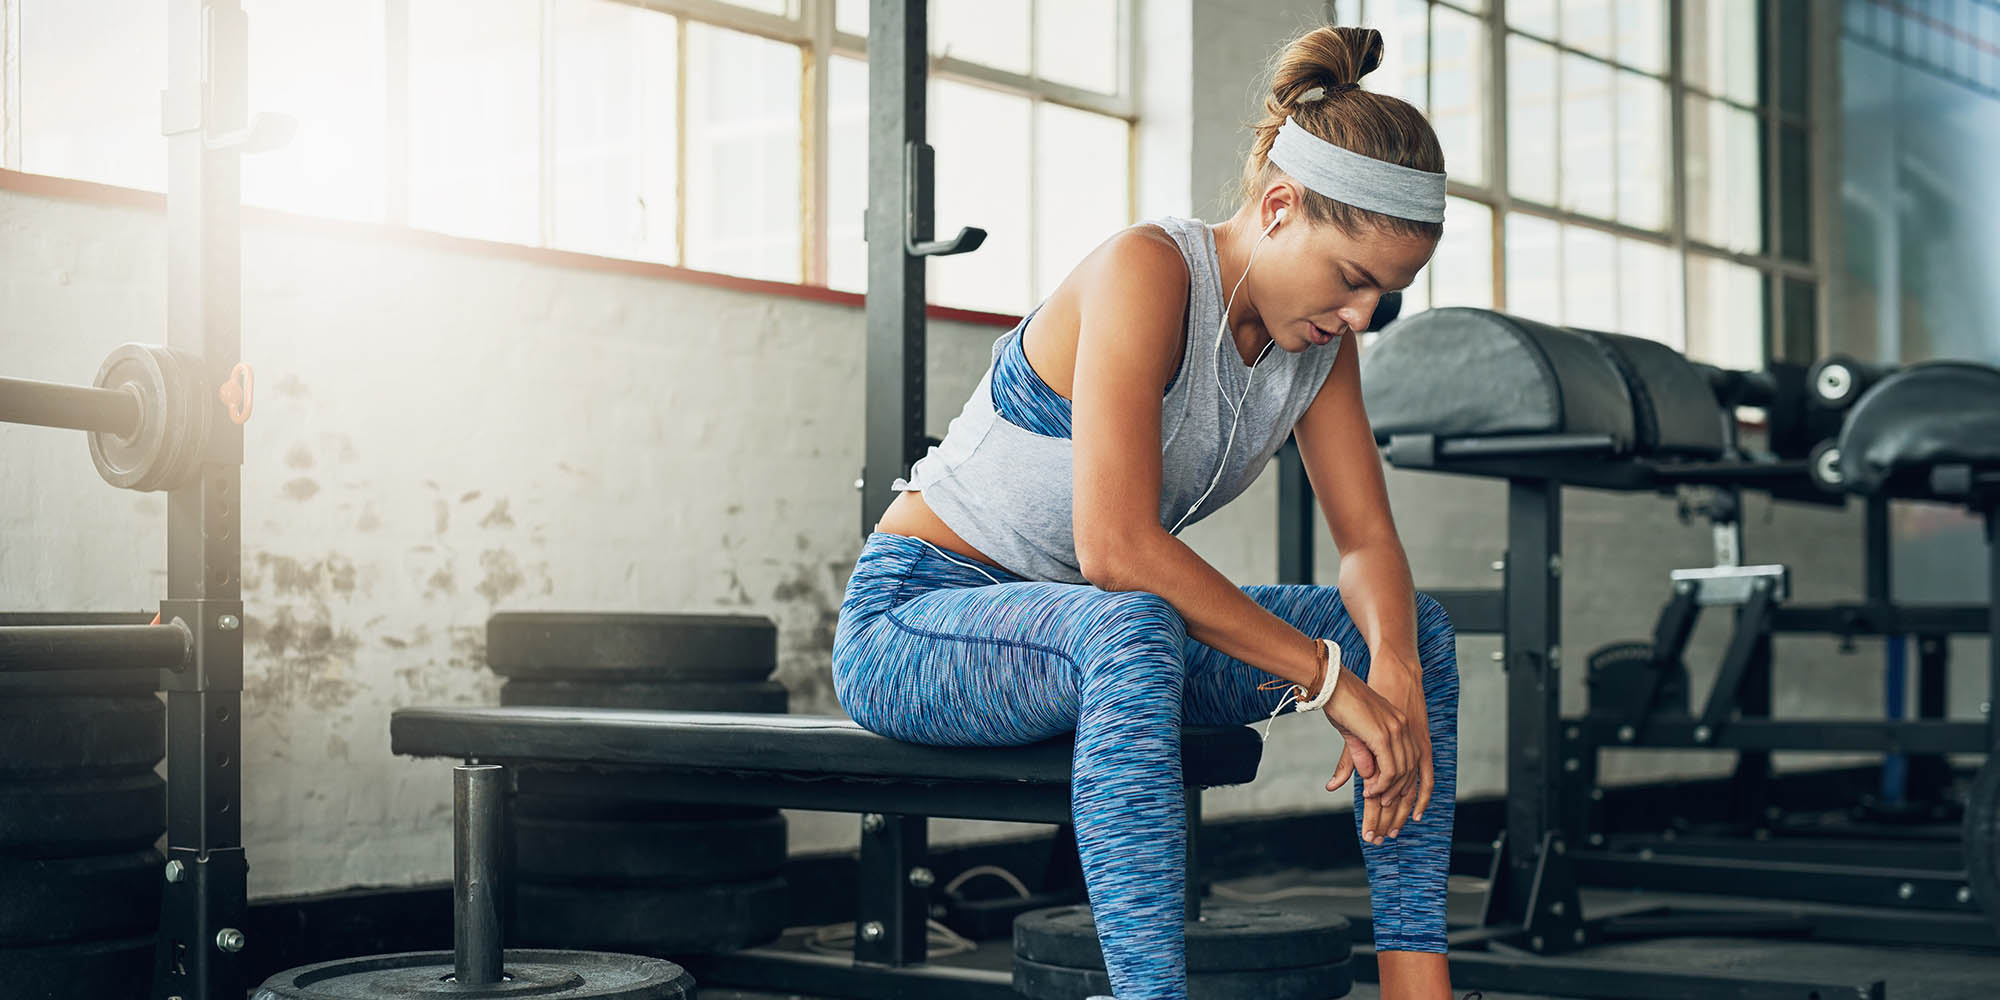 10 Reasons Why You Hate Working Out